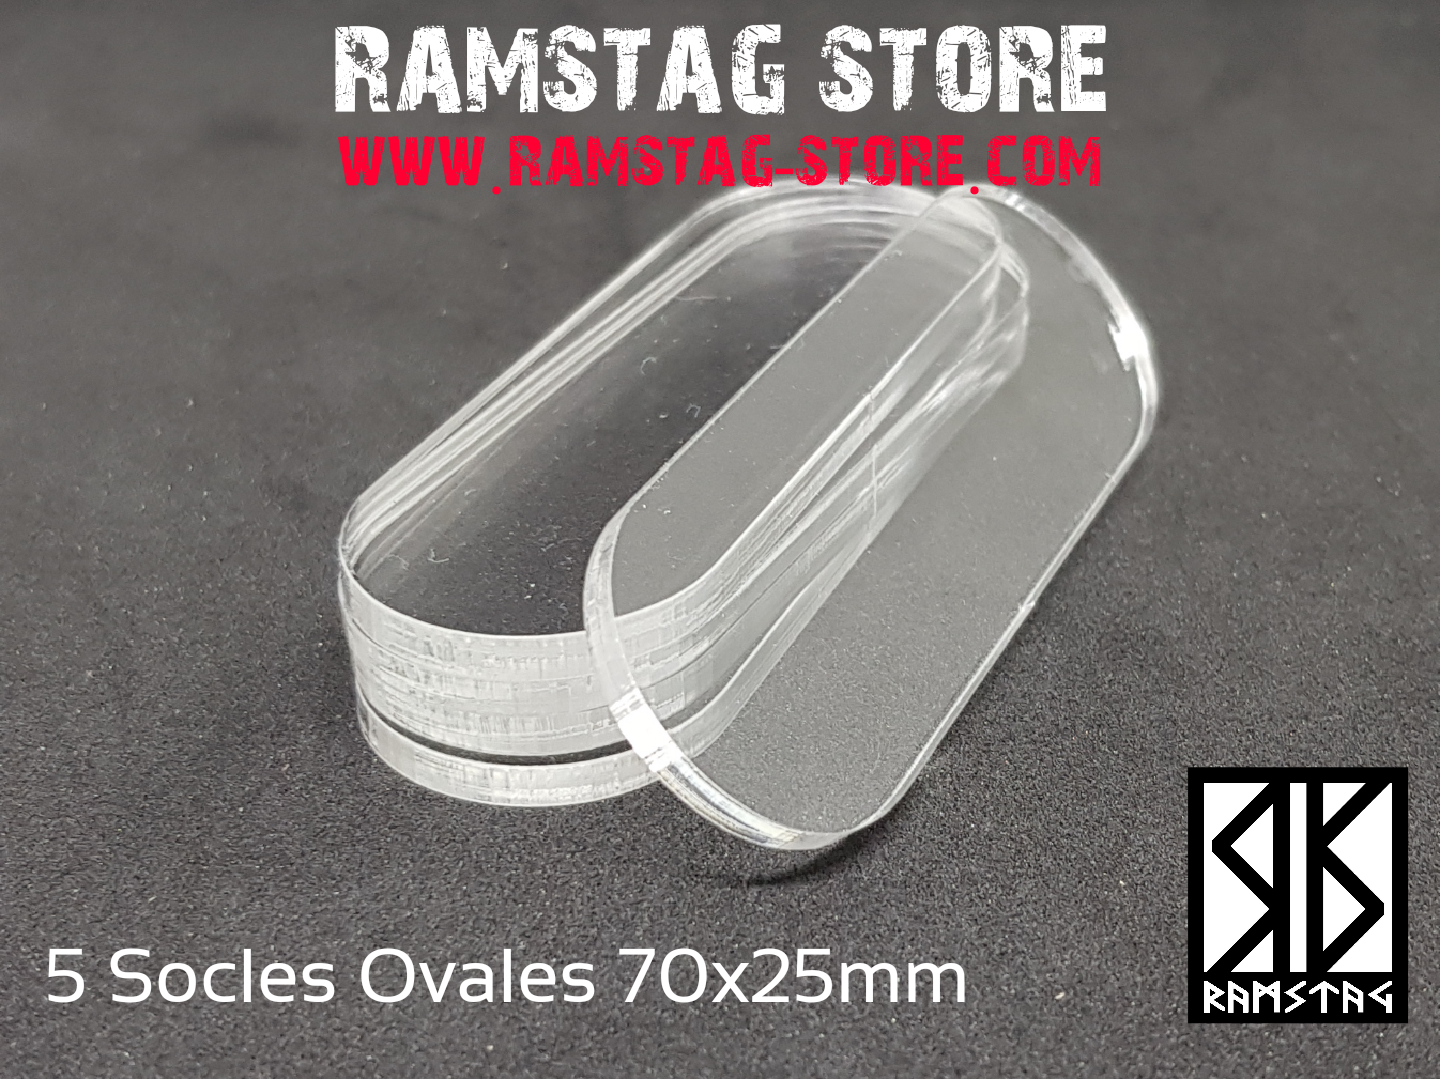 3 Socles Ovales 70x25